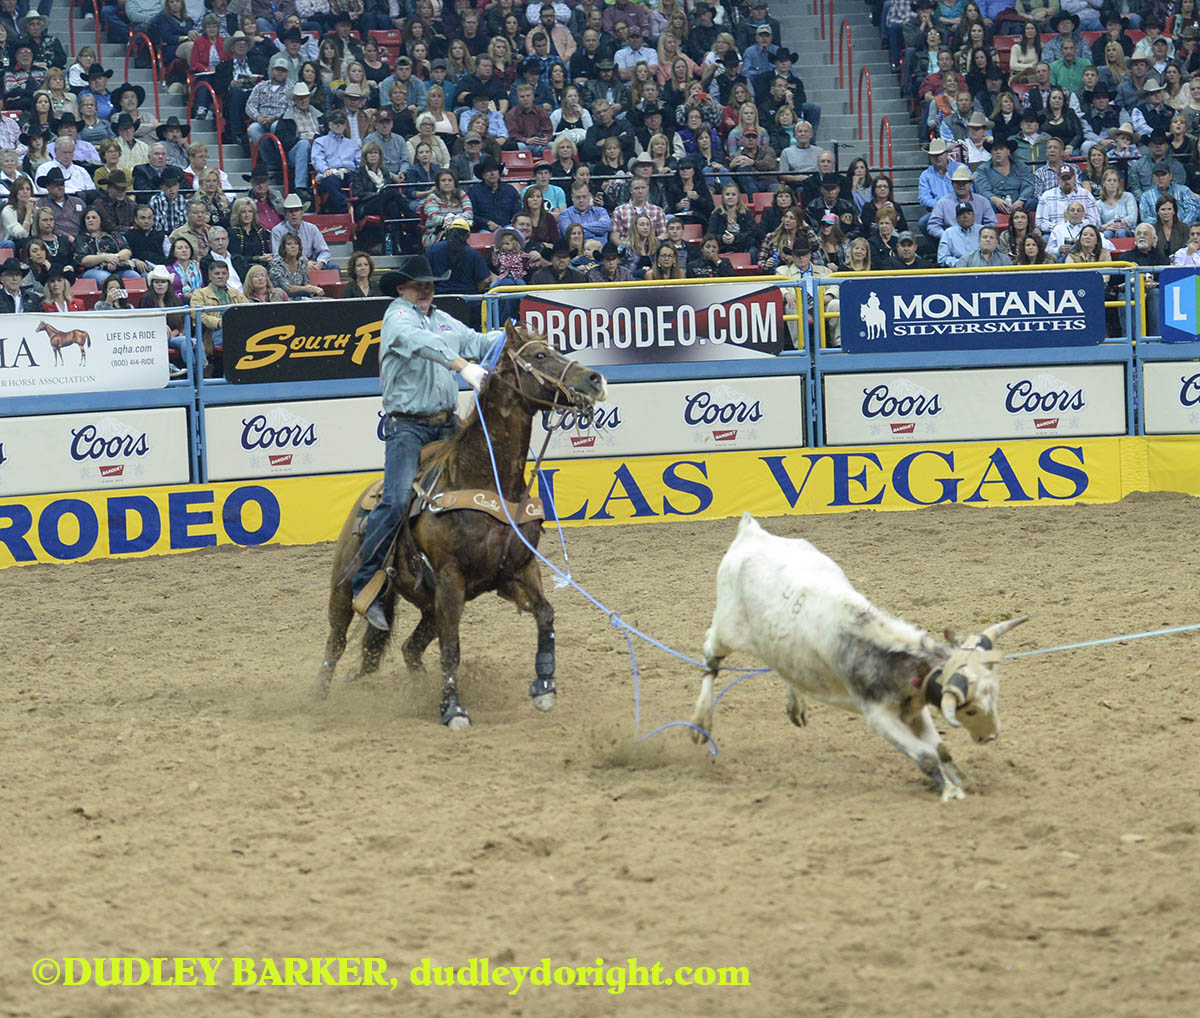 Cory Petska, round three, 2014 WNFR, Dec. 6, 2014 || Photo by DUDLEY BARKER, dudleydoright.com